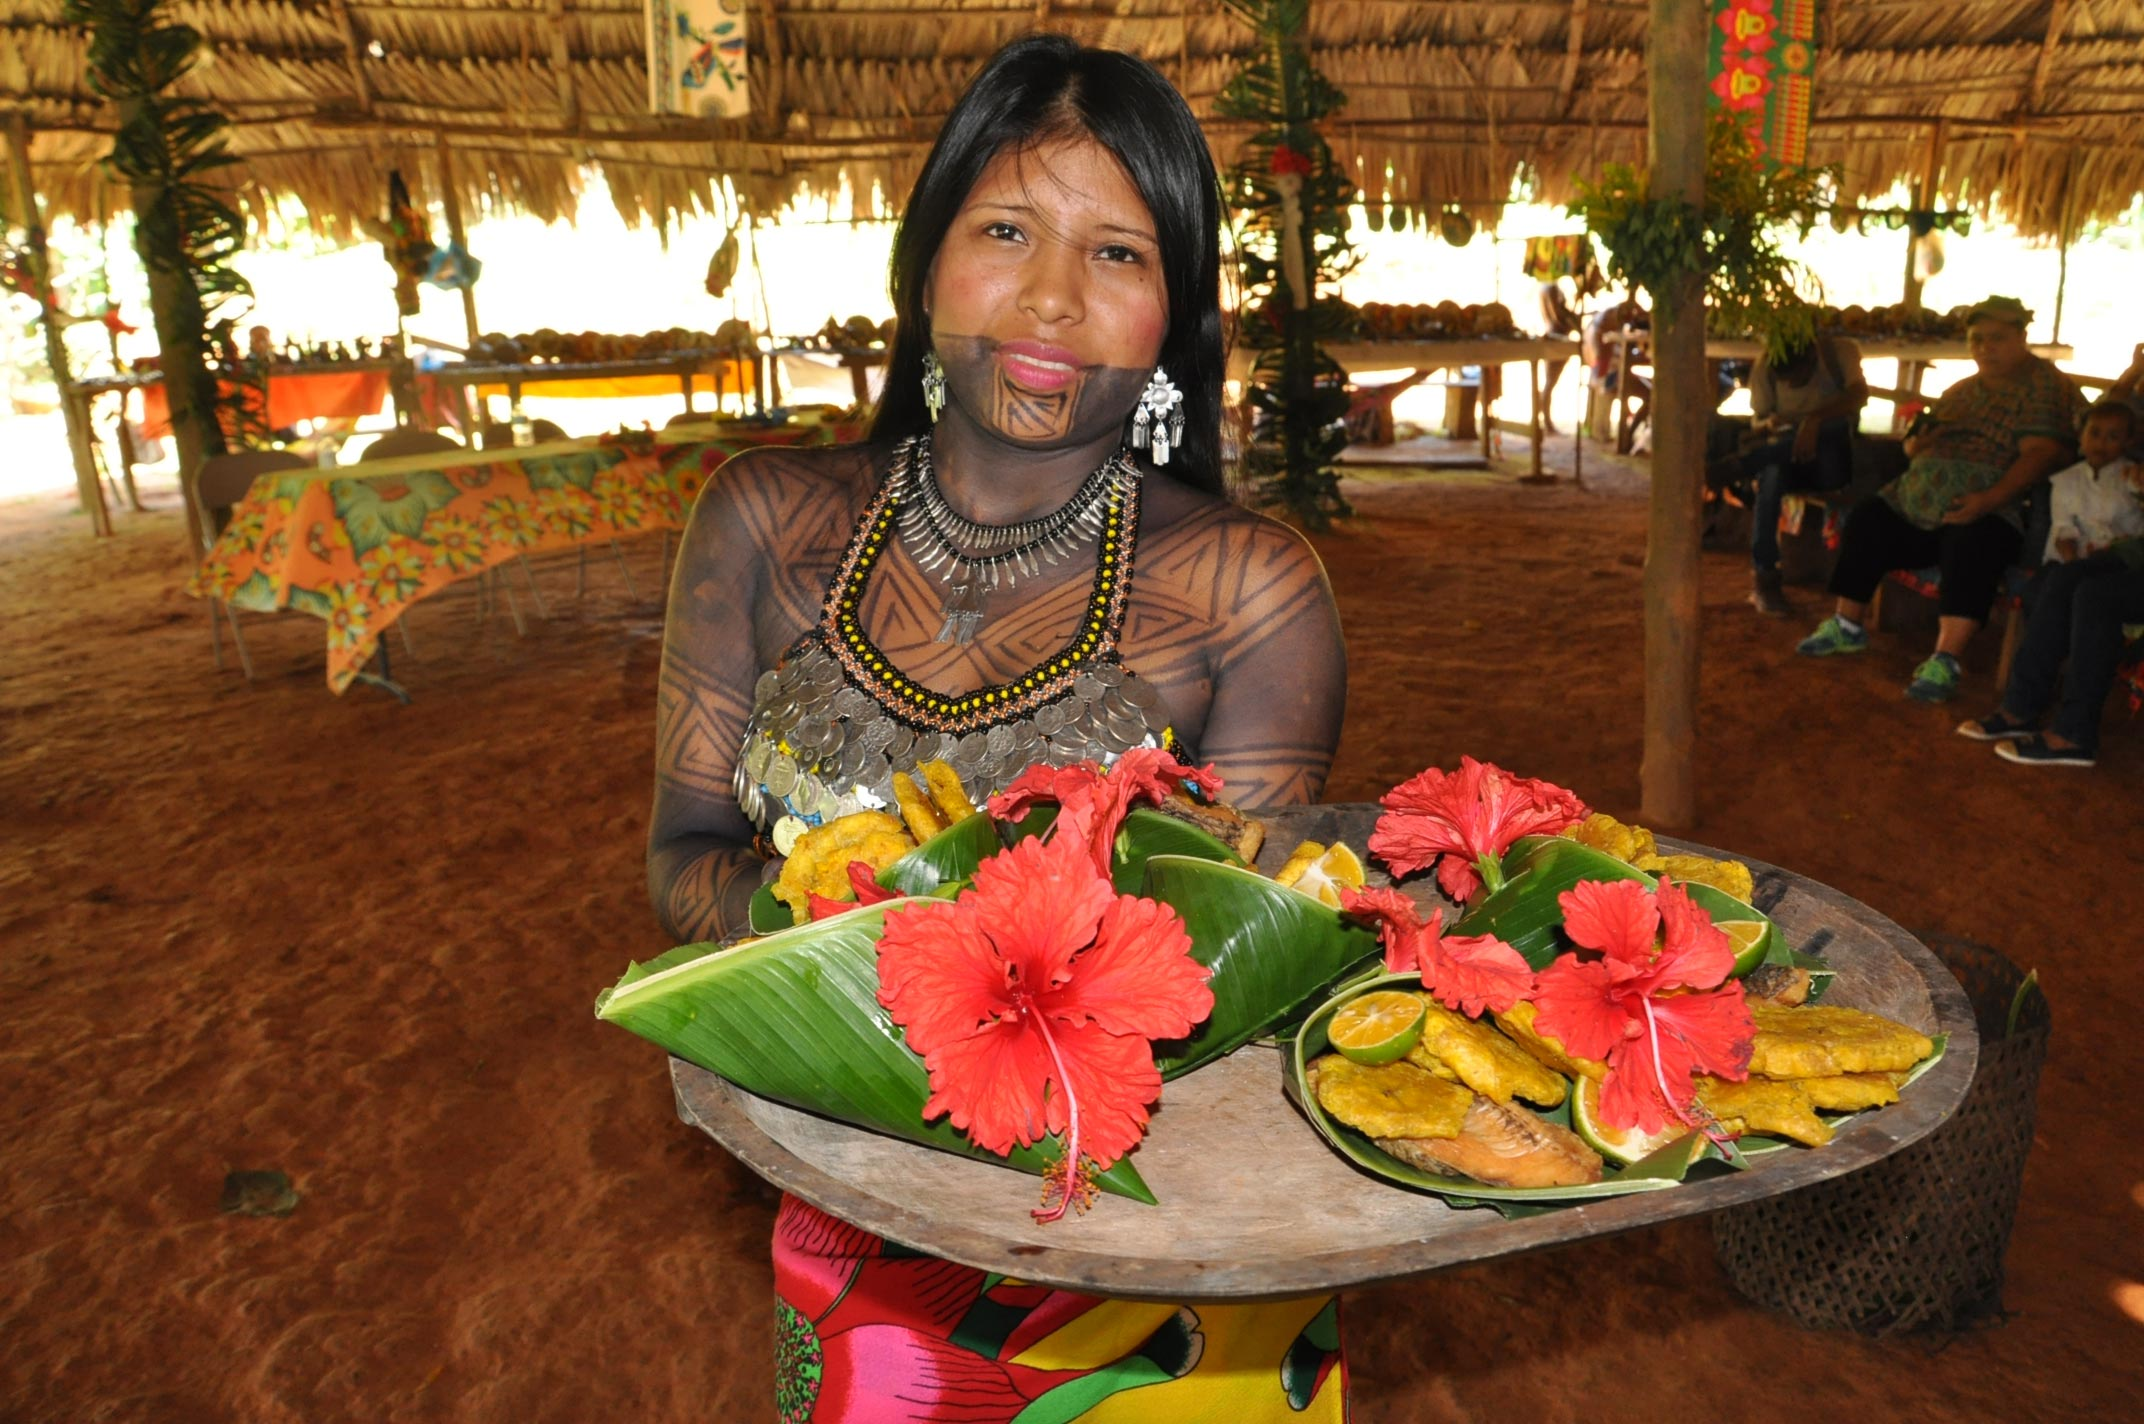 An Emberá woman in traditional garb displays a tray of food decorated with flowers